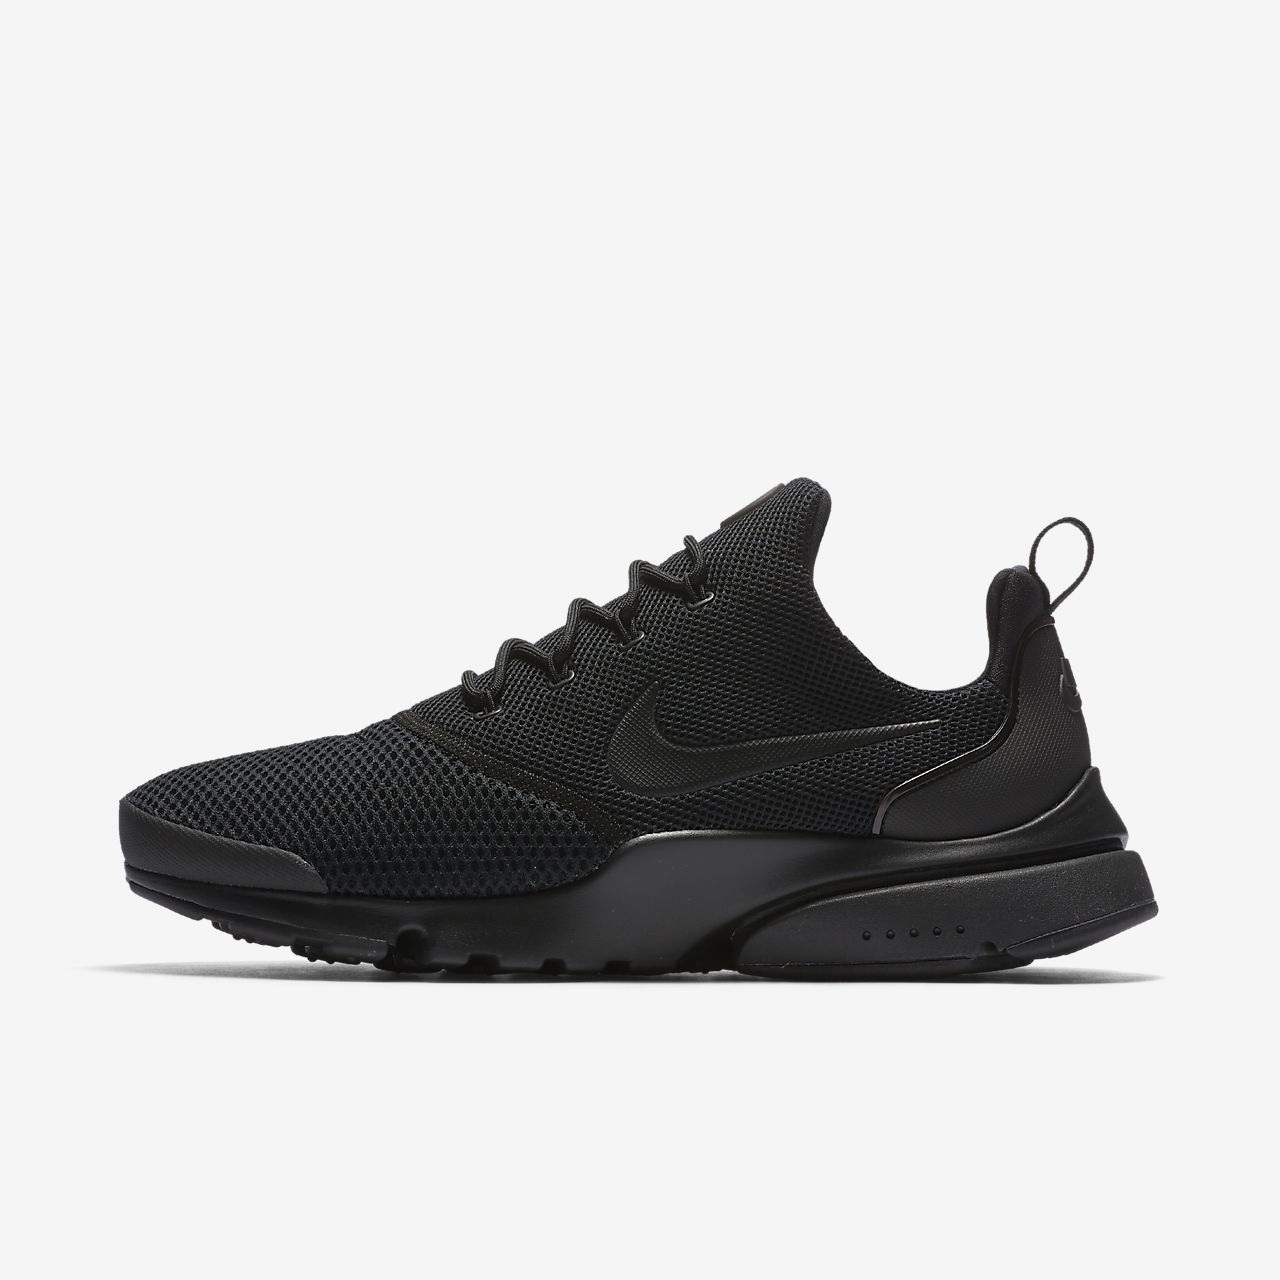 outlet store e3f1a 9e286 ... Chaussure Nike Presto Fly pour Homme